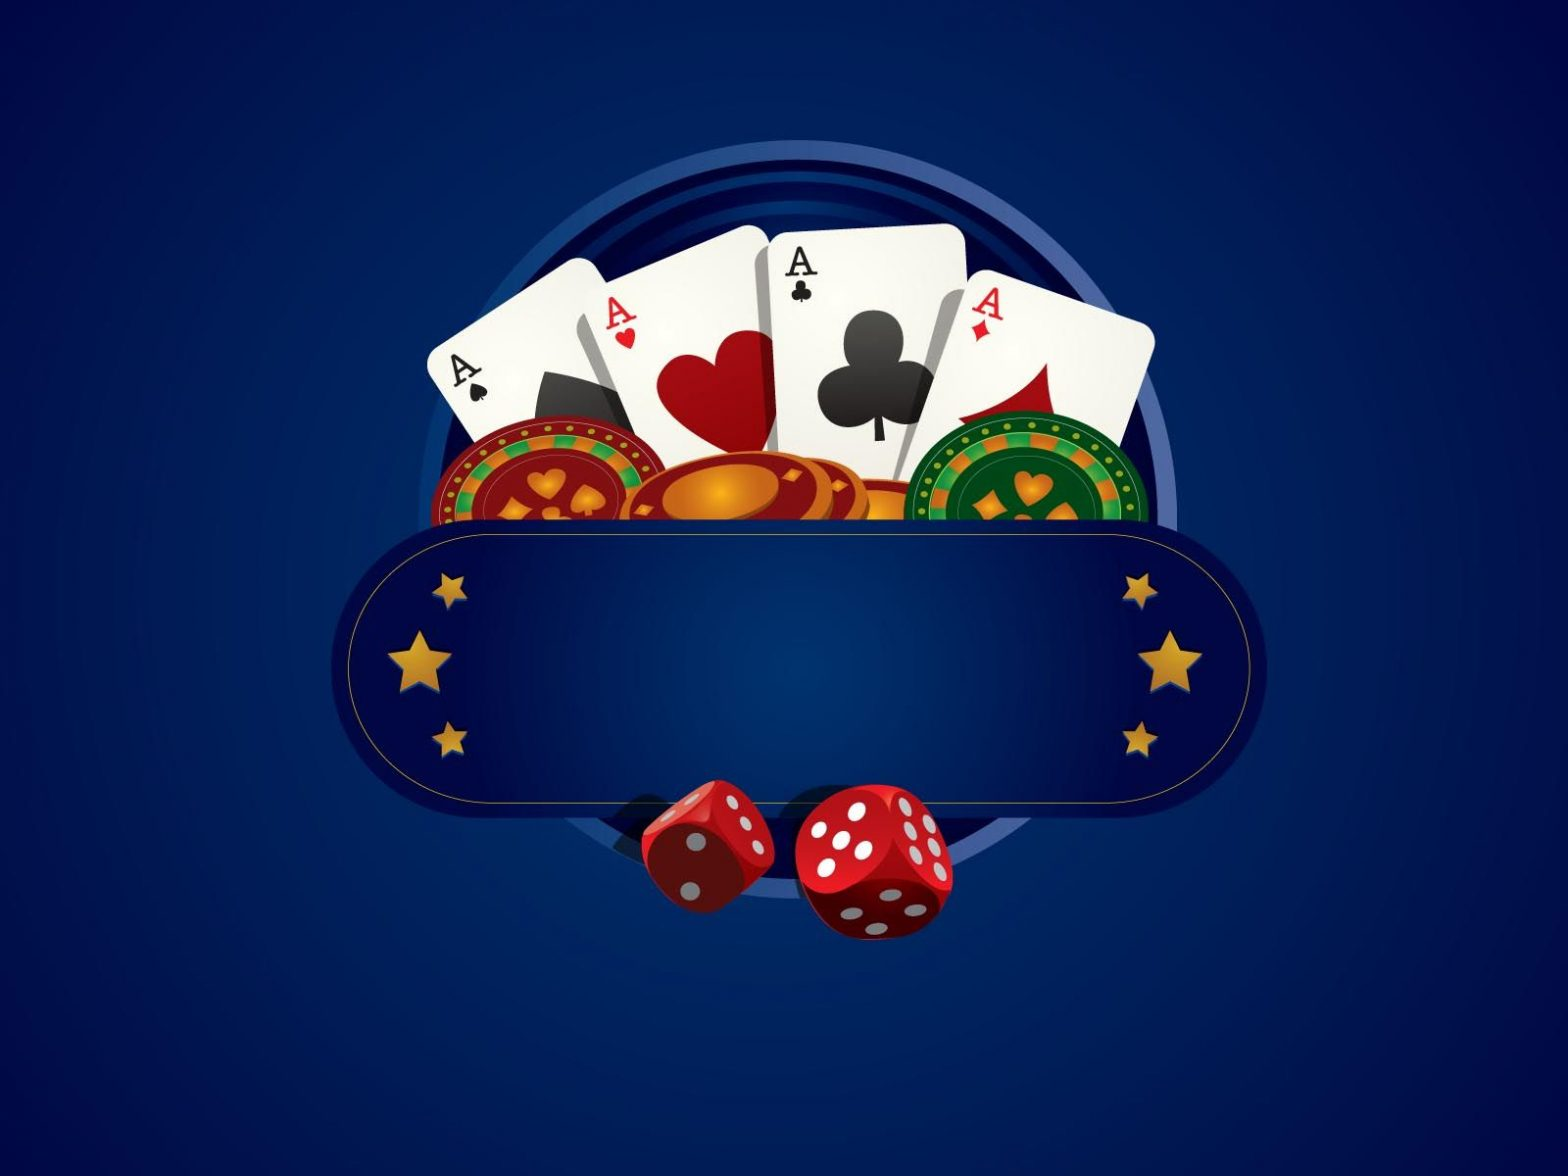 Who Else Needs To Know The Mystery Behind Casino?